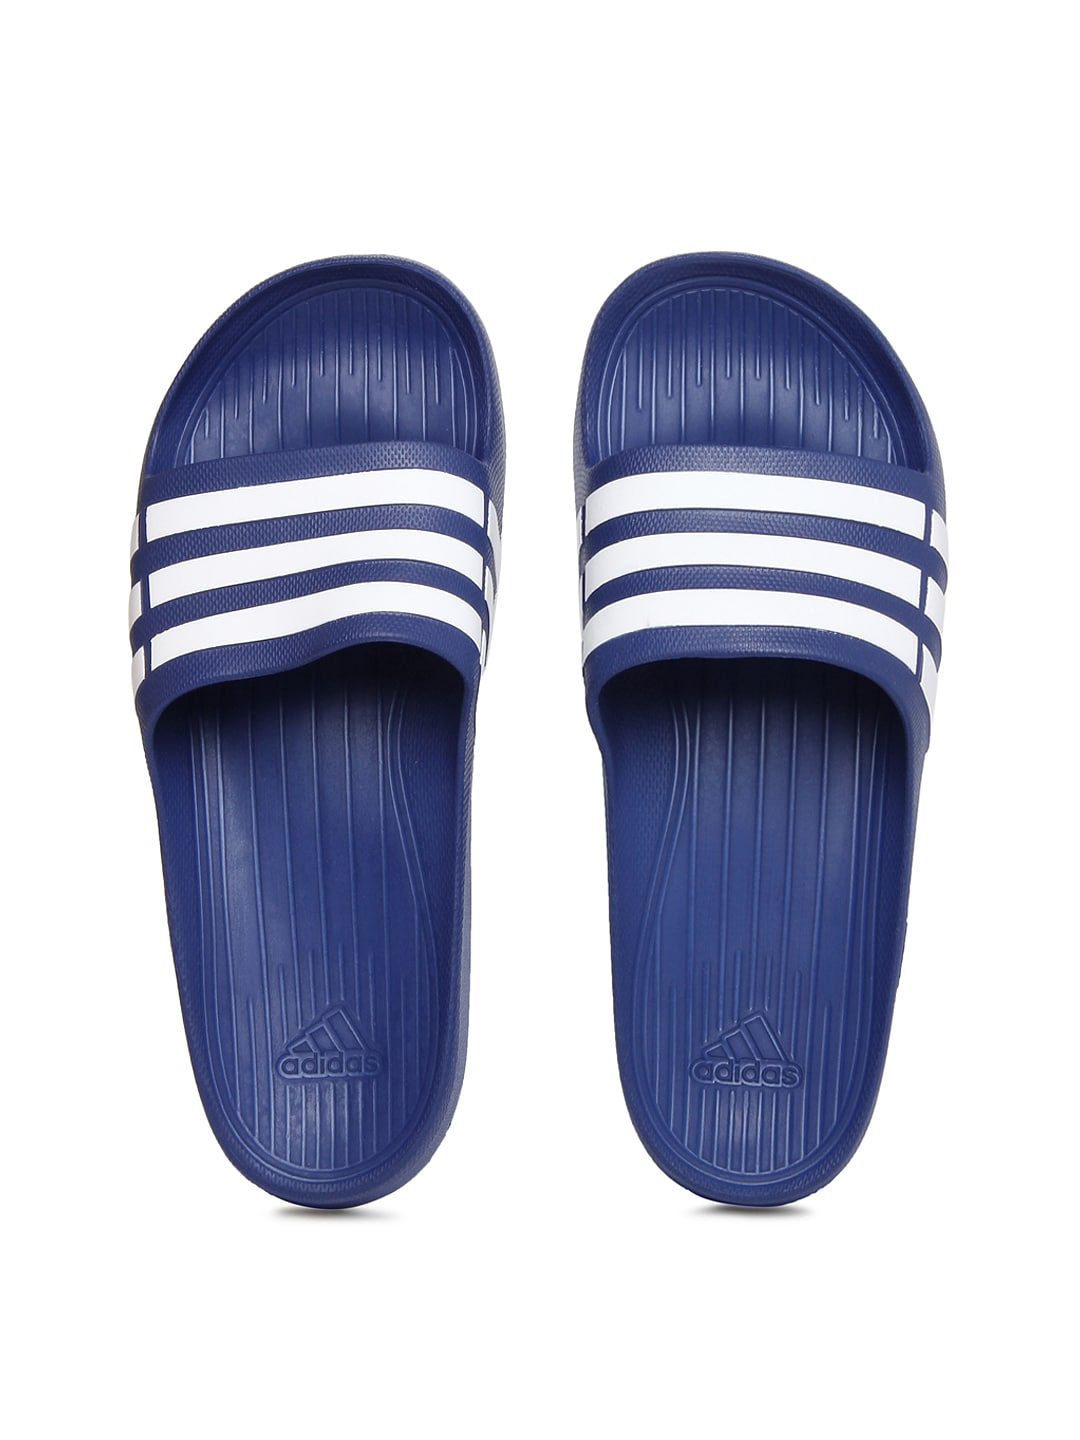 75c94d3f3c7d90 Adidas Flip Flops Tracksuits Wristbands Socks - Buy Adidas Flip Flops  Tracksuits Wristbands Socks online in India